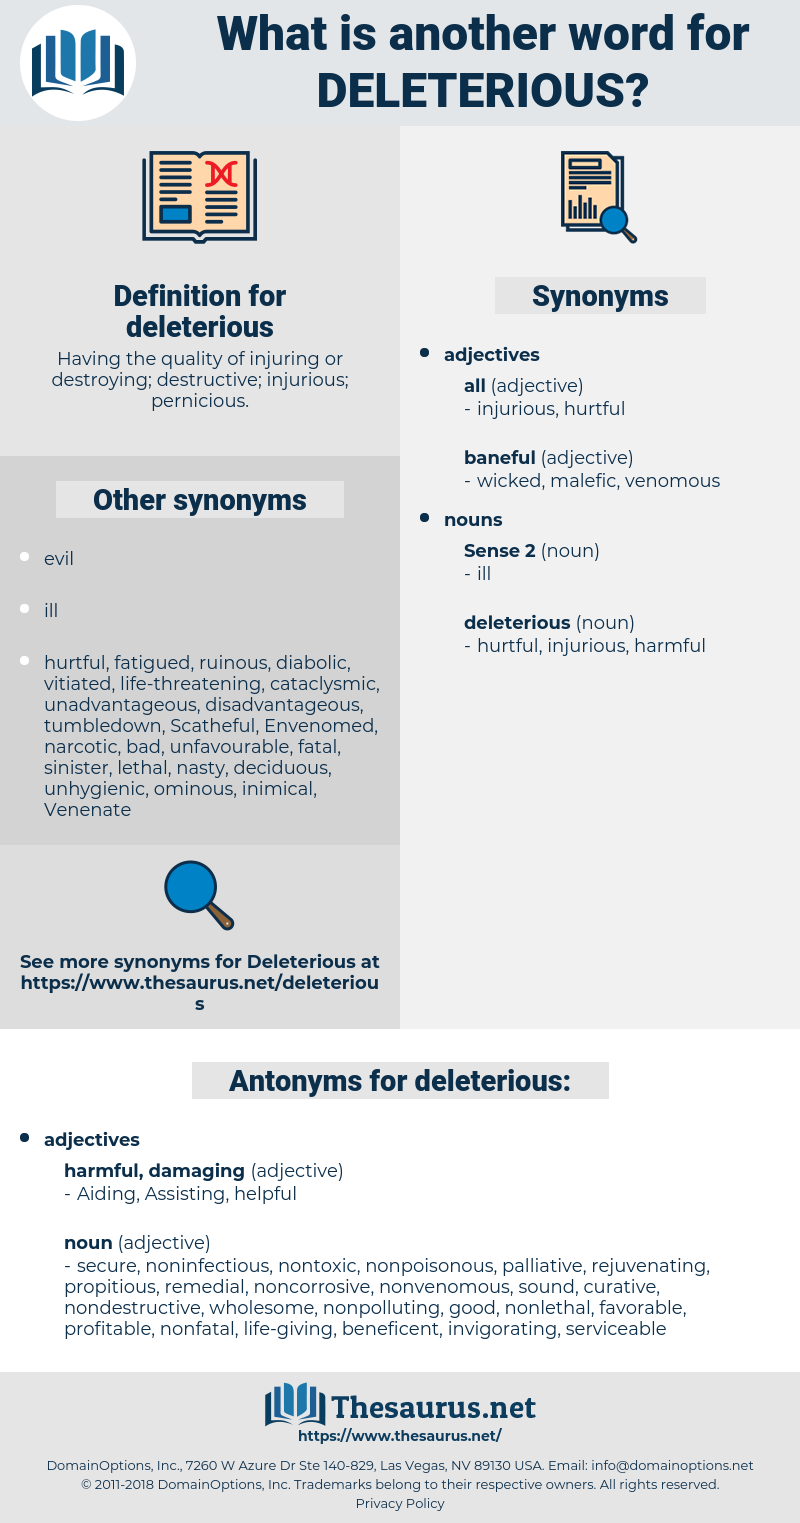 deleterious, synonym deleterious, another word for deleterious, words like deleterious, thesaurus deleterious